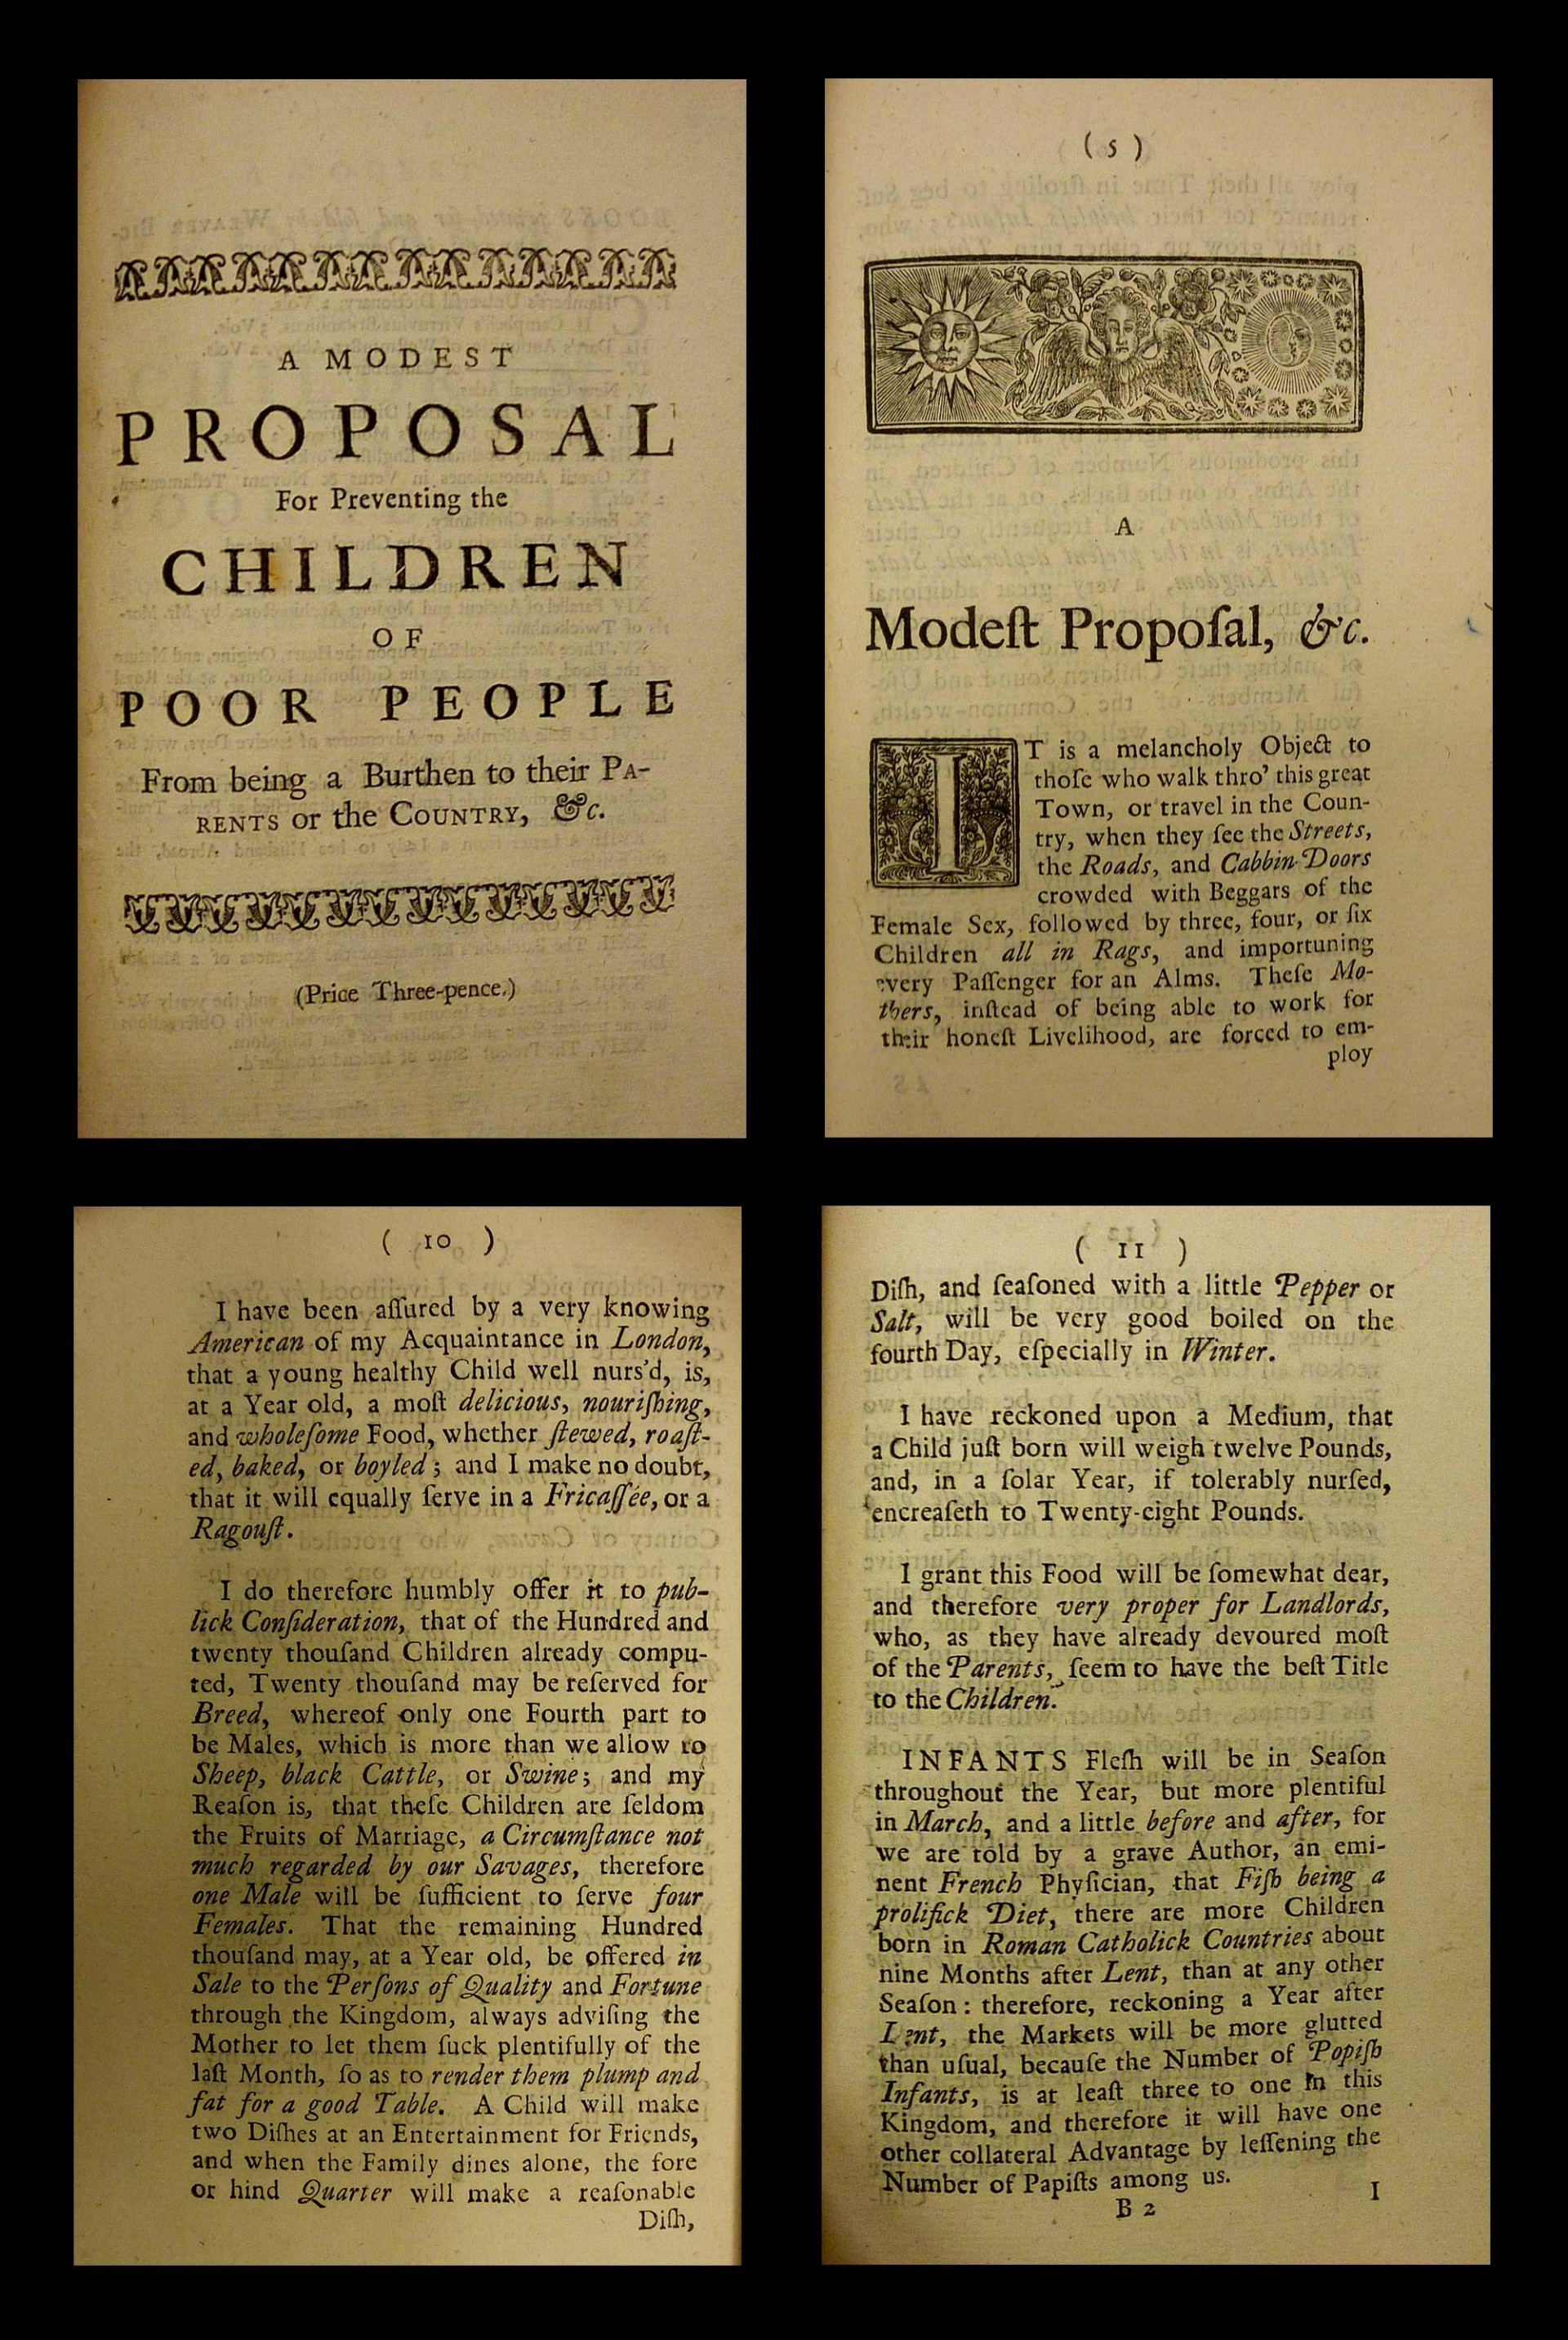 020 Modest Proposal Essay Example Modestproposal Exceptional Conclusion Topics Prompts 1920